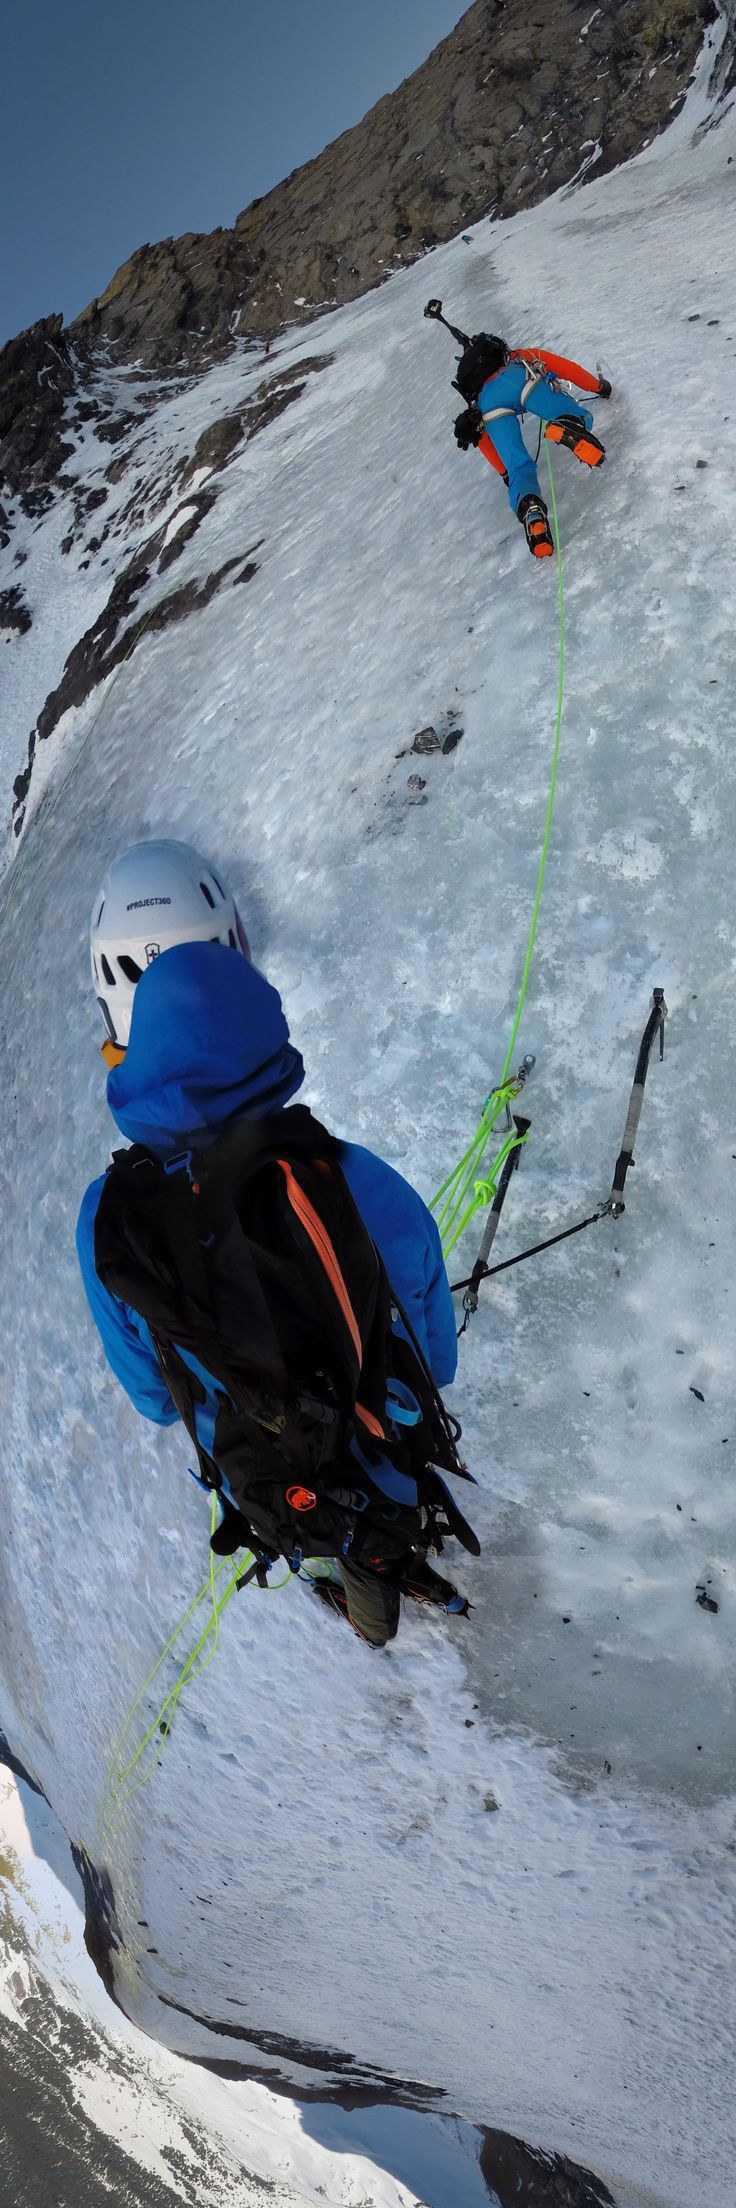 #PROJECT360 | The challenge: Make 6 outdoor cameras, a GPS Unit and a backpack work together for an unique interactive climbing experience. #mountaineering